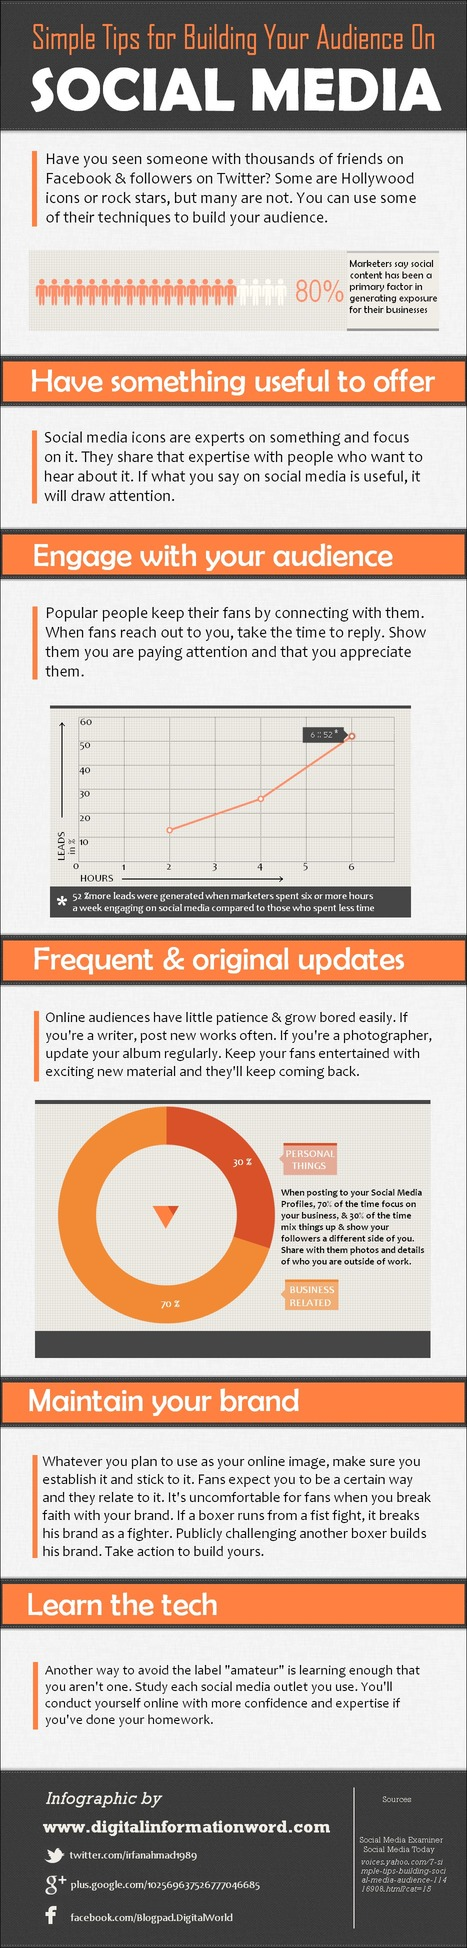 Simple Strategies For Growing A Social Media Audience [Infographic] | Aspiring Outliers | Scoop.it